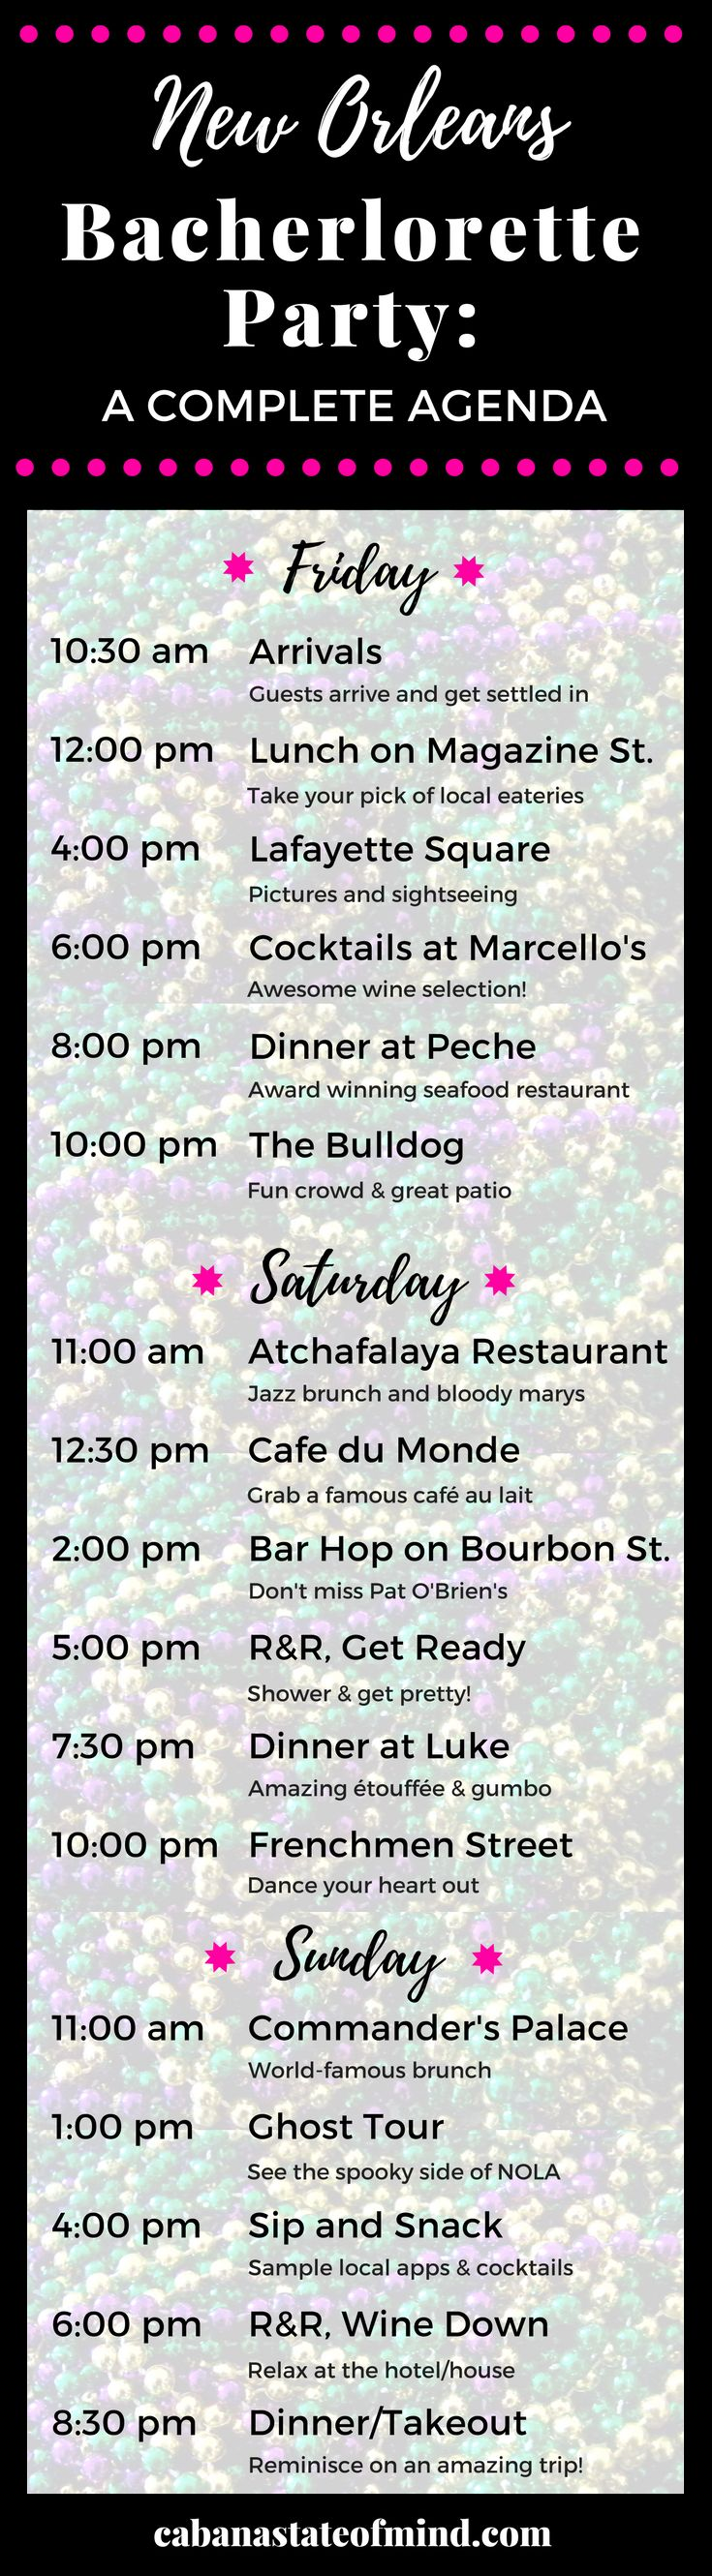 A weekend agenda for your Bachelorette Party in New Orleans!